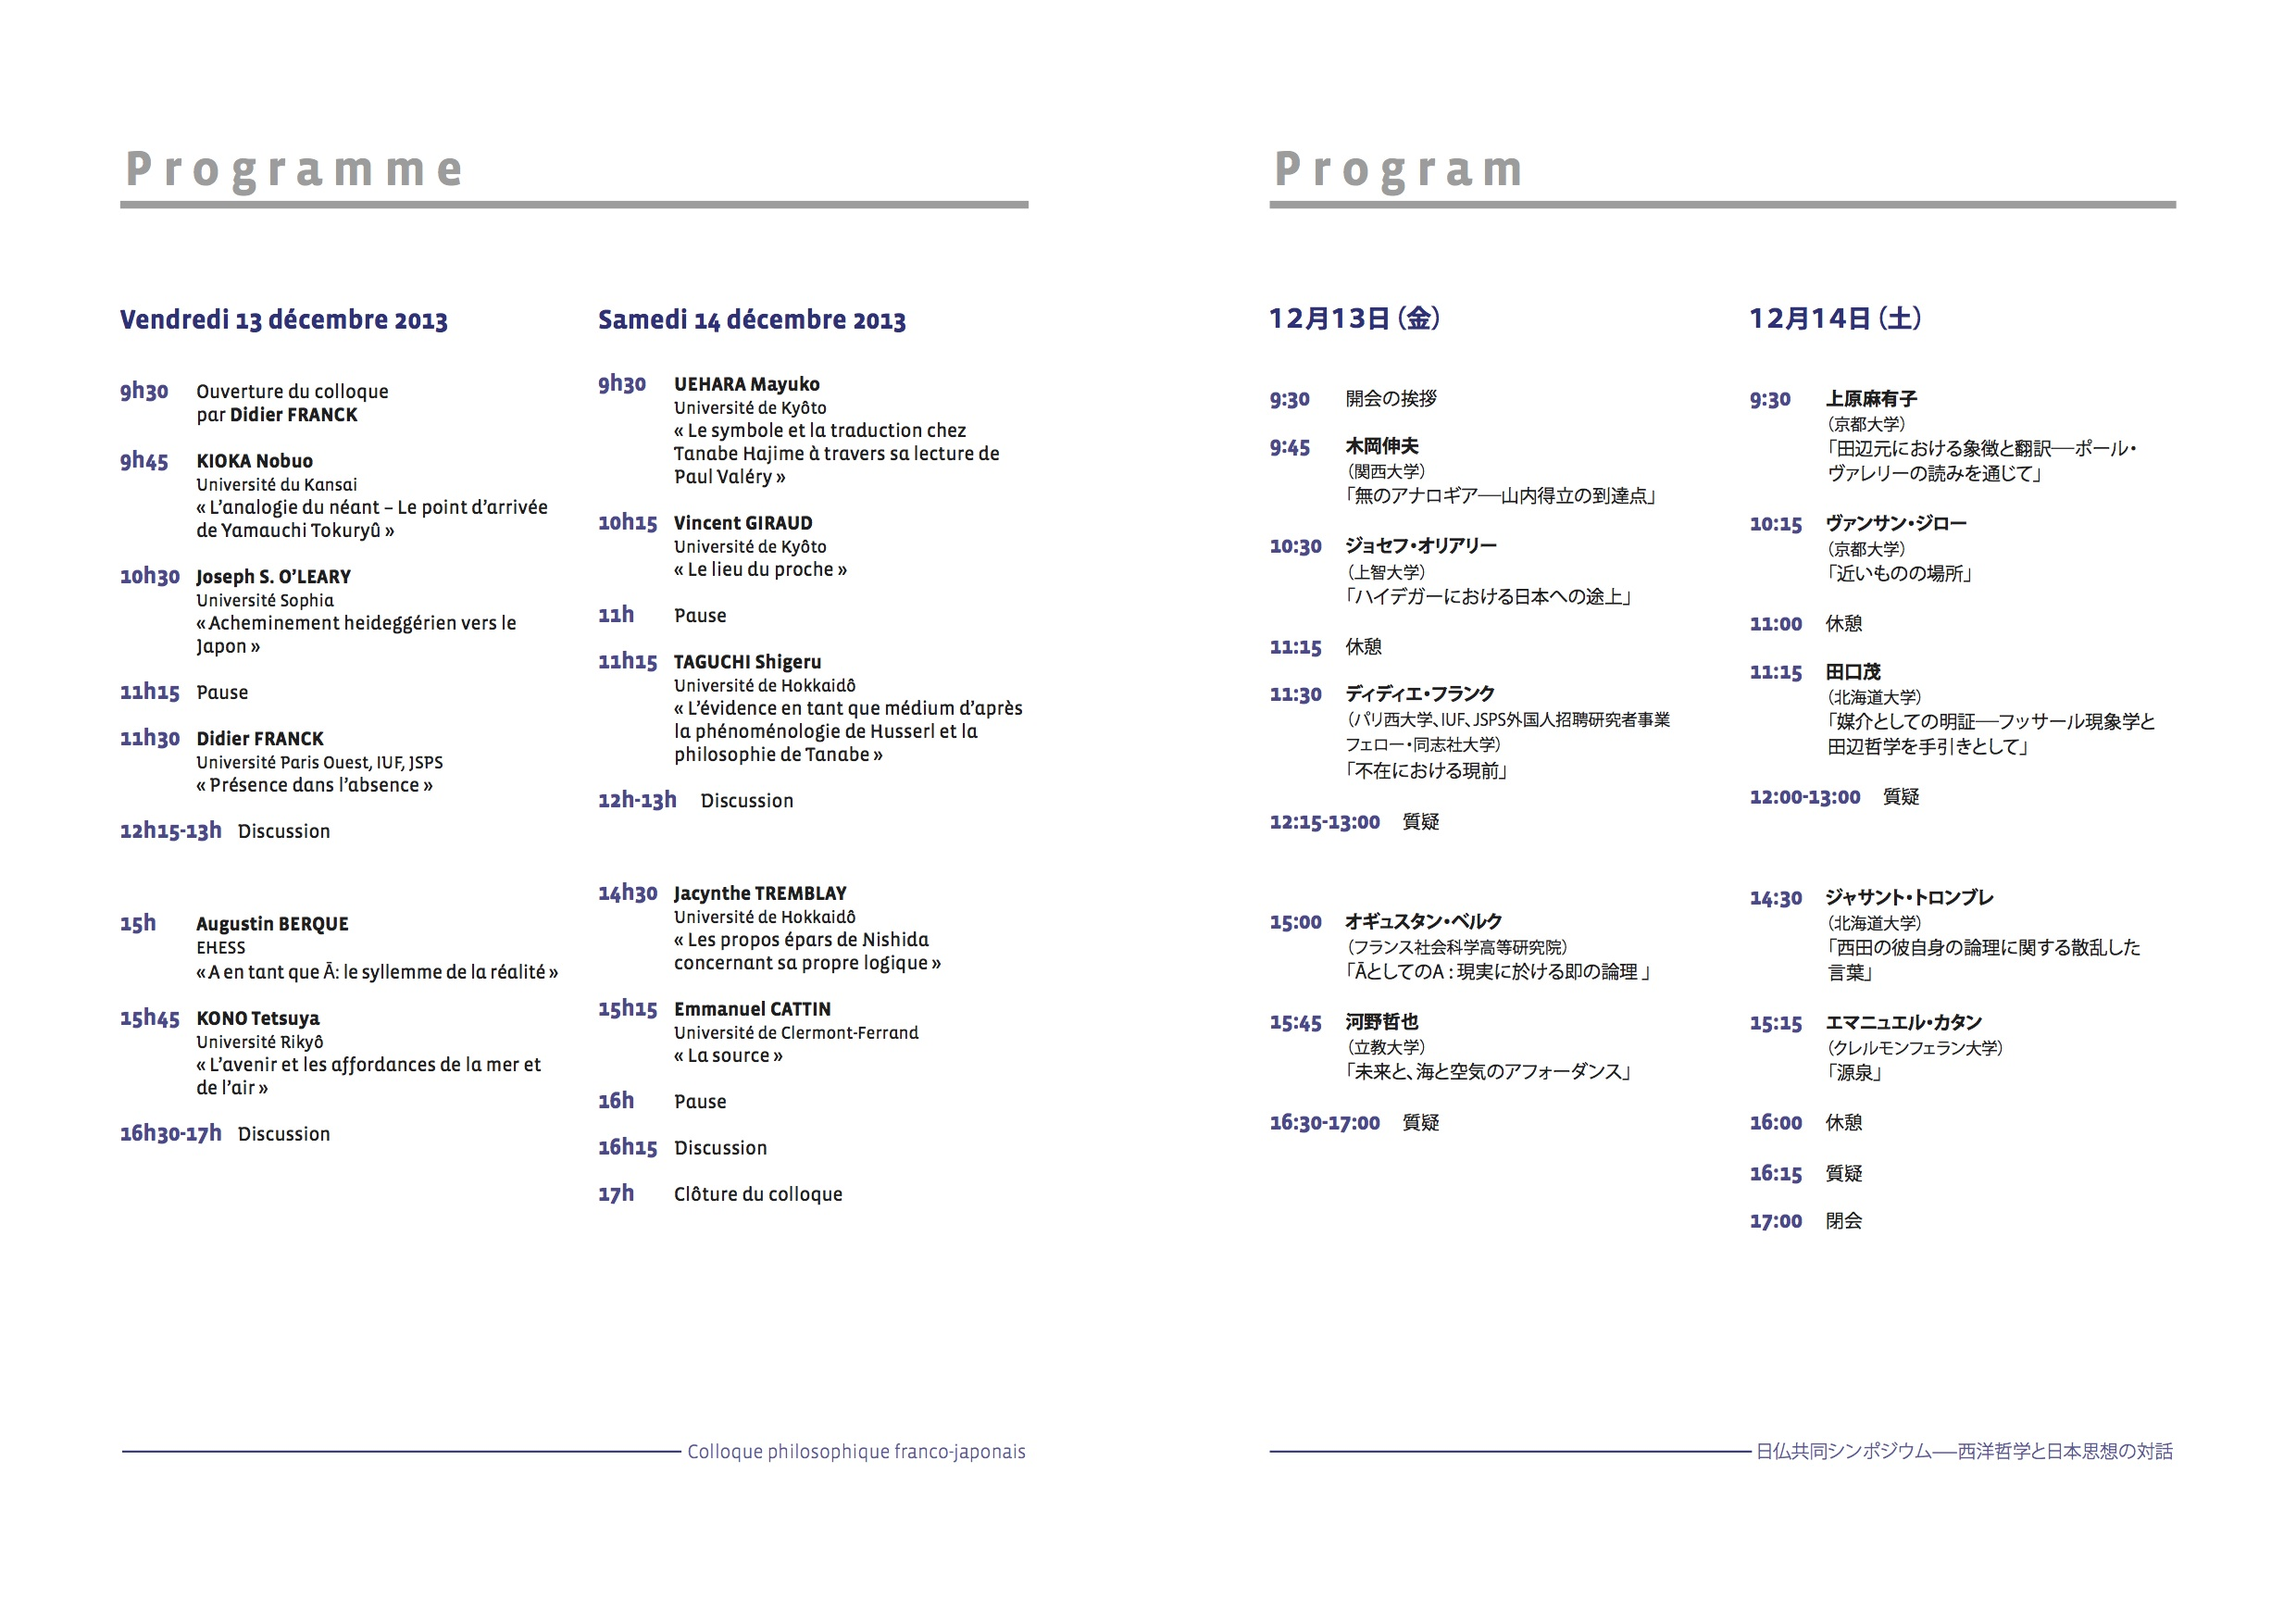 Colloque%20philosophique-program.jpg